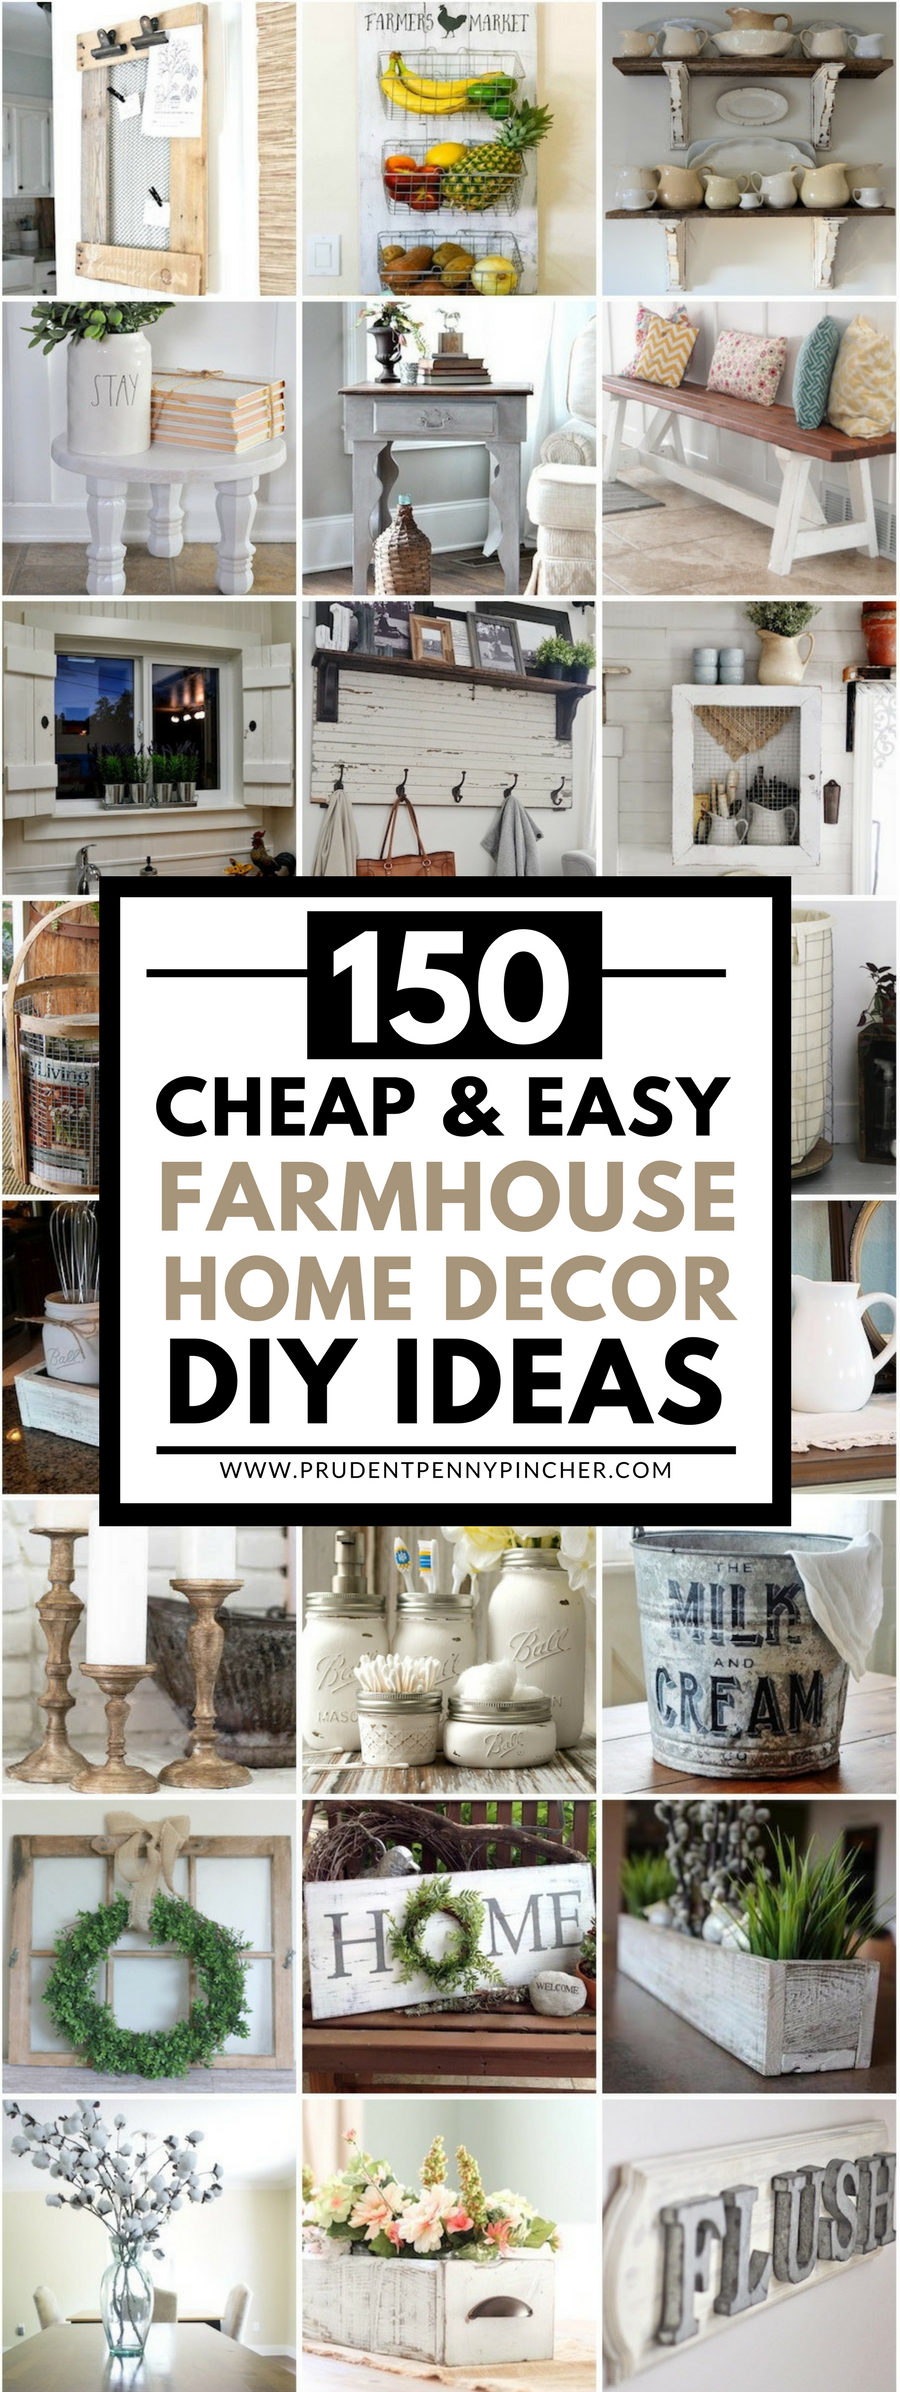 150 cheap and easy diy farmhouse style home decor ideas prudent penny pincher - Home decor picture ...